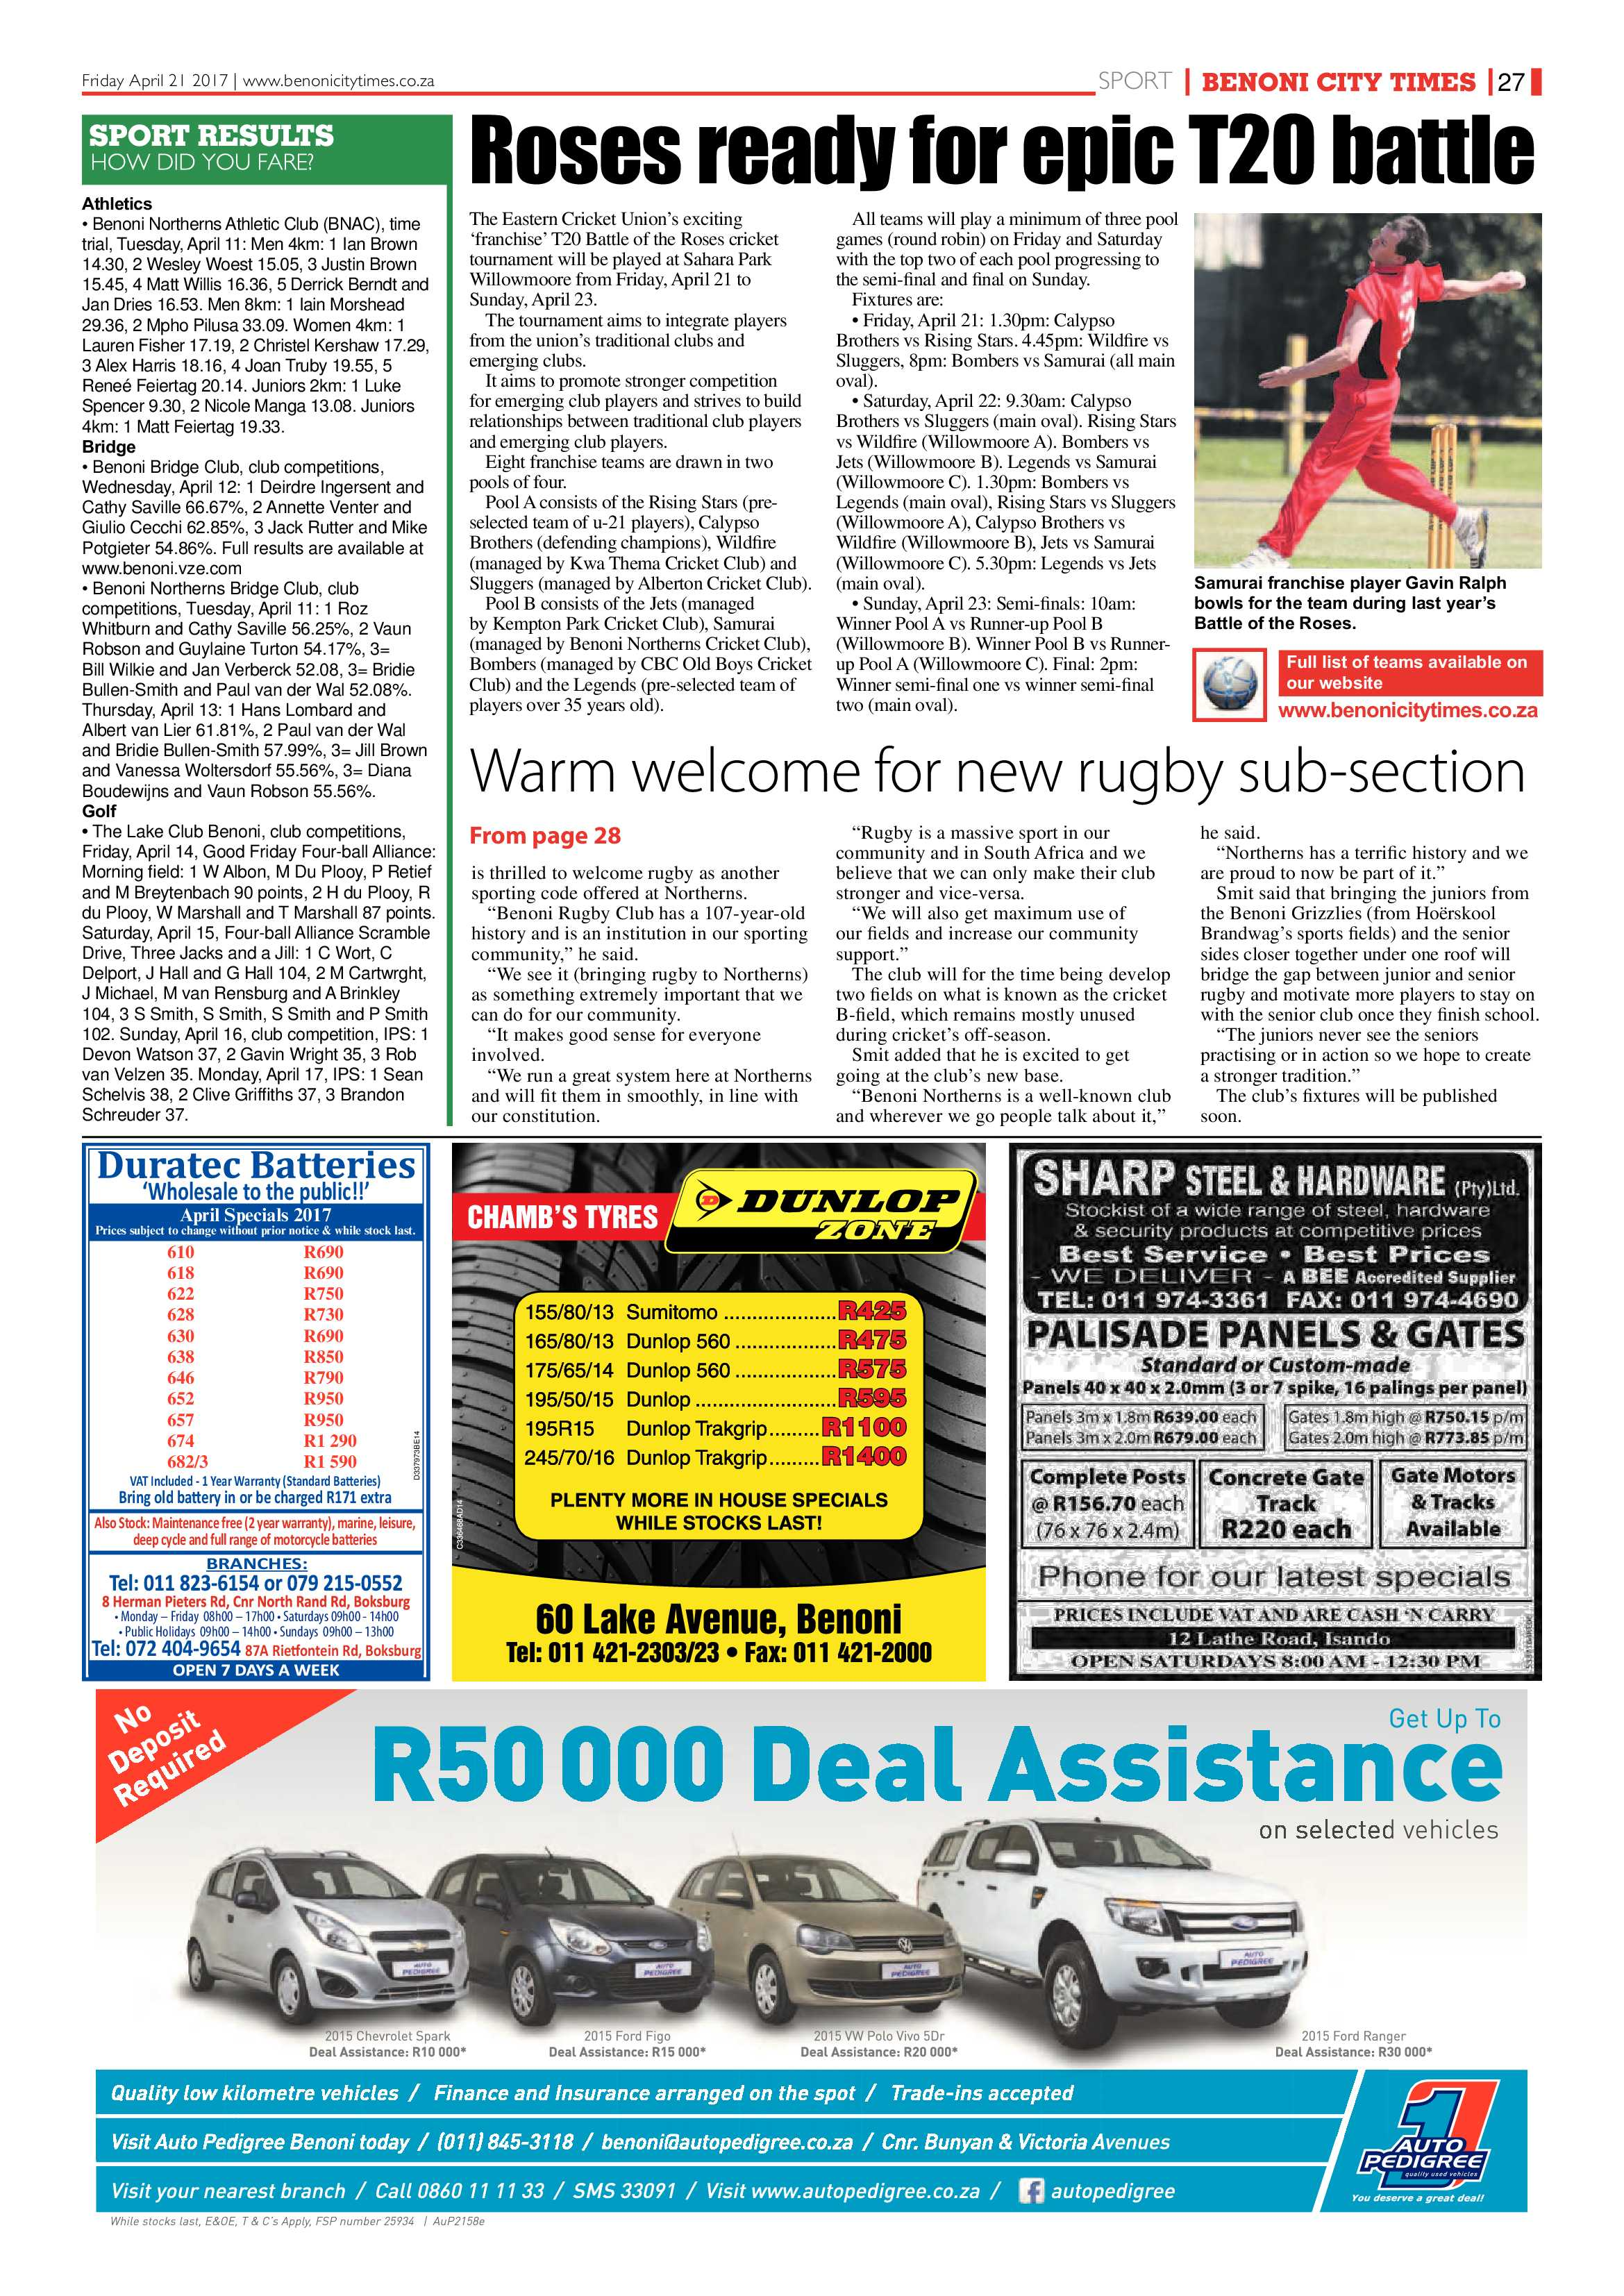 benoni-city-times-20-april-2017-epapers-page-27